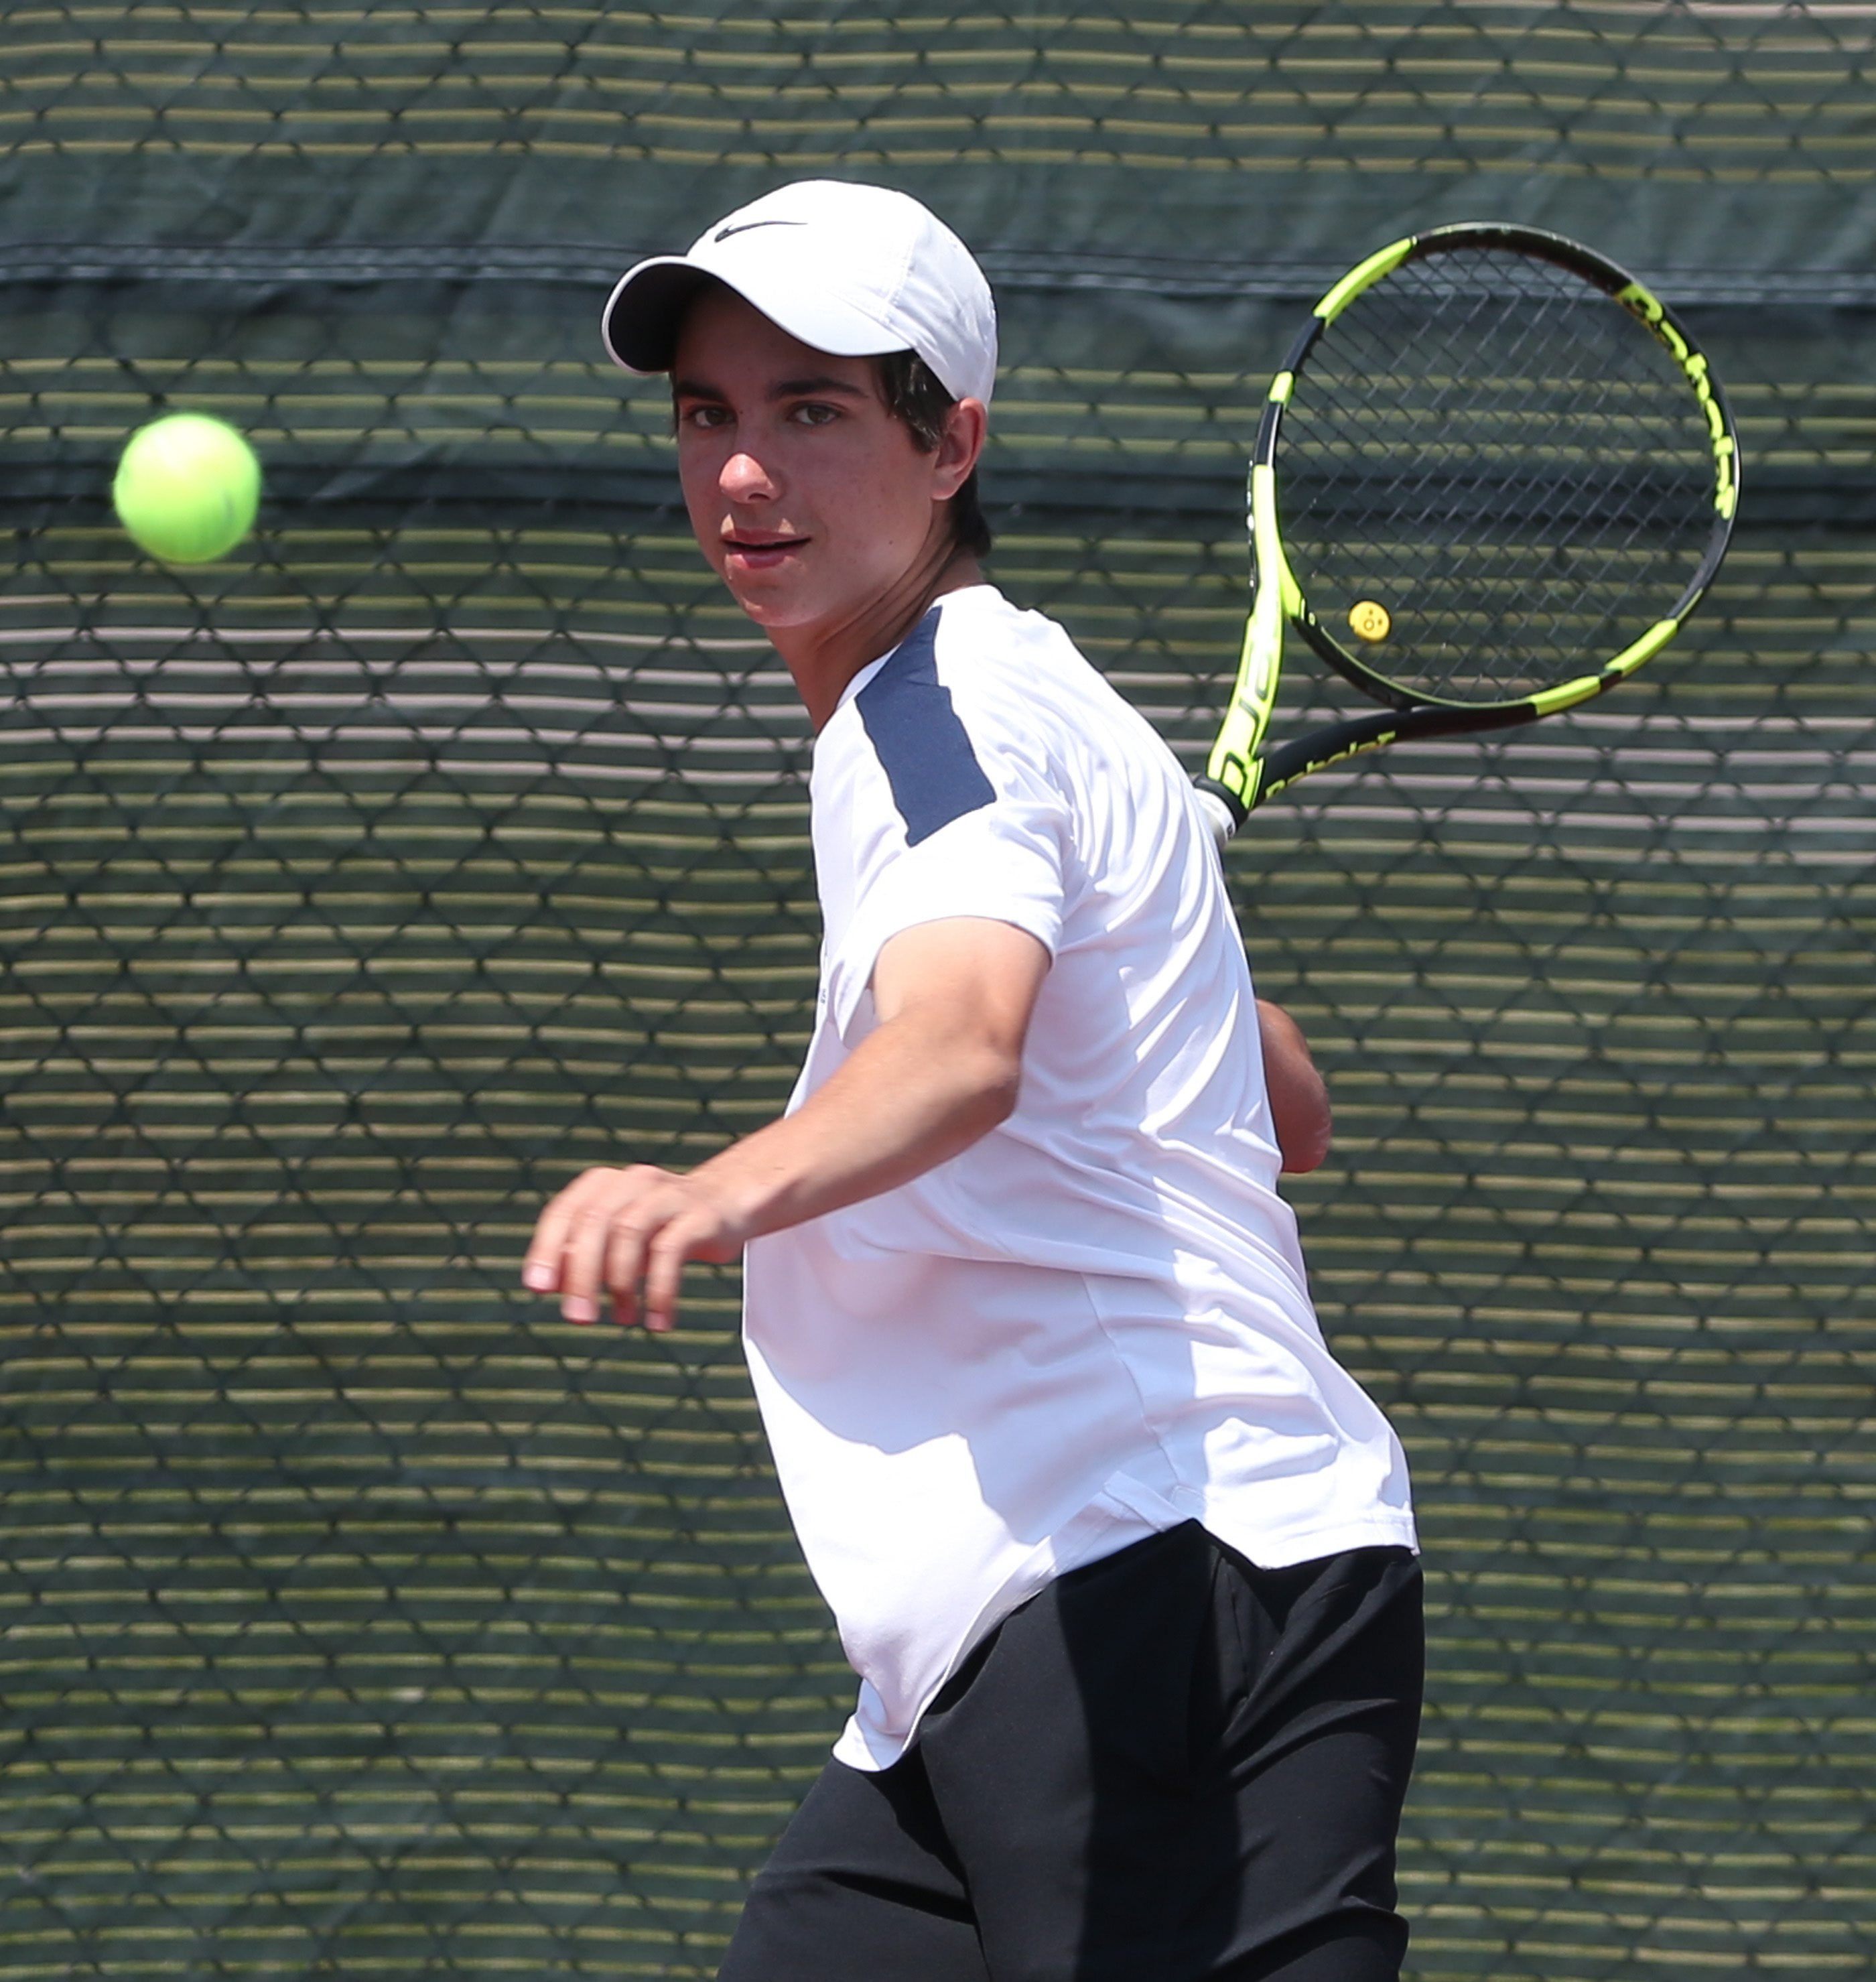 Jack McClaren of East Aurora picked up his second straight Section VI boys tennis singles championship.